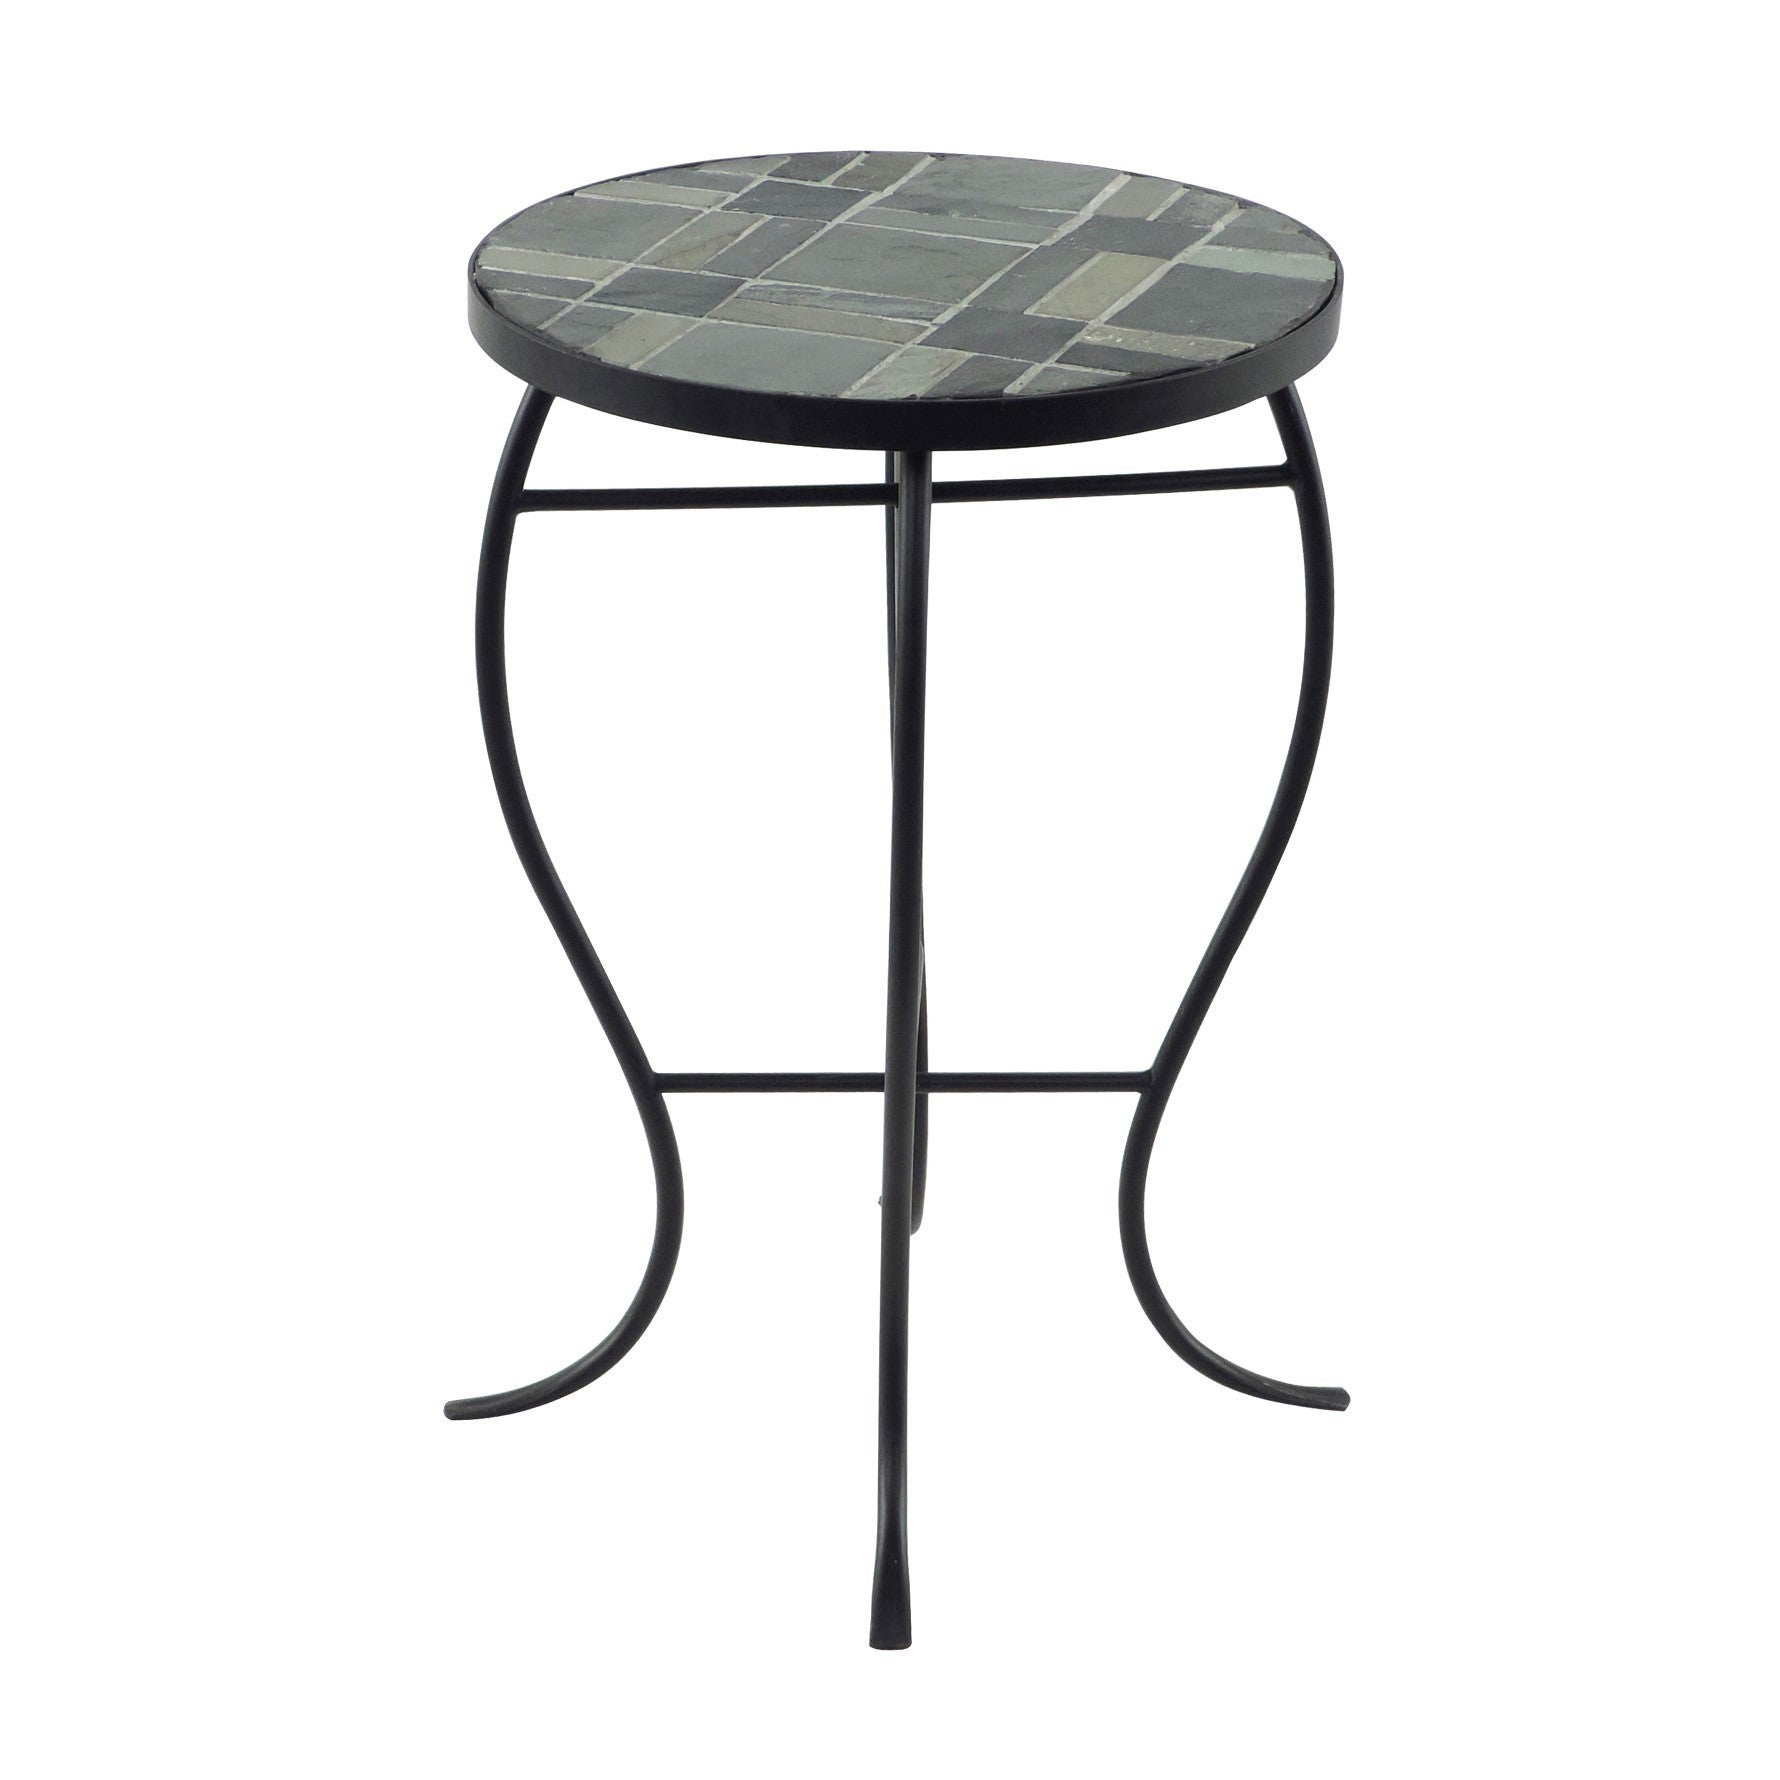 Briarwood Home Decor Mosaic Tile Round-top Table with Met...